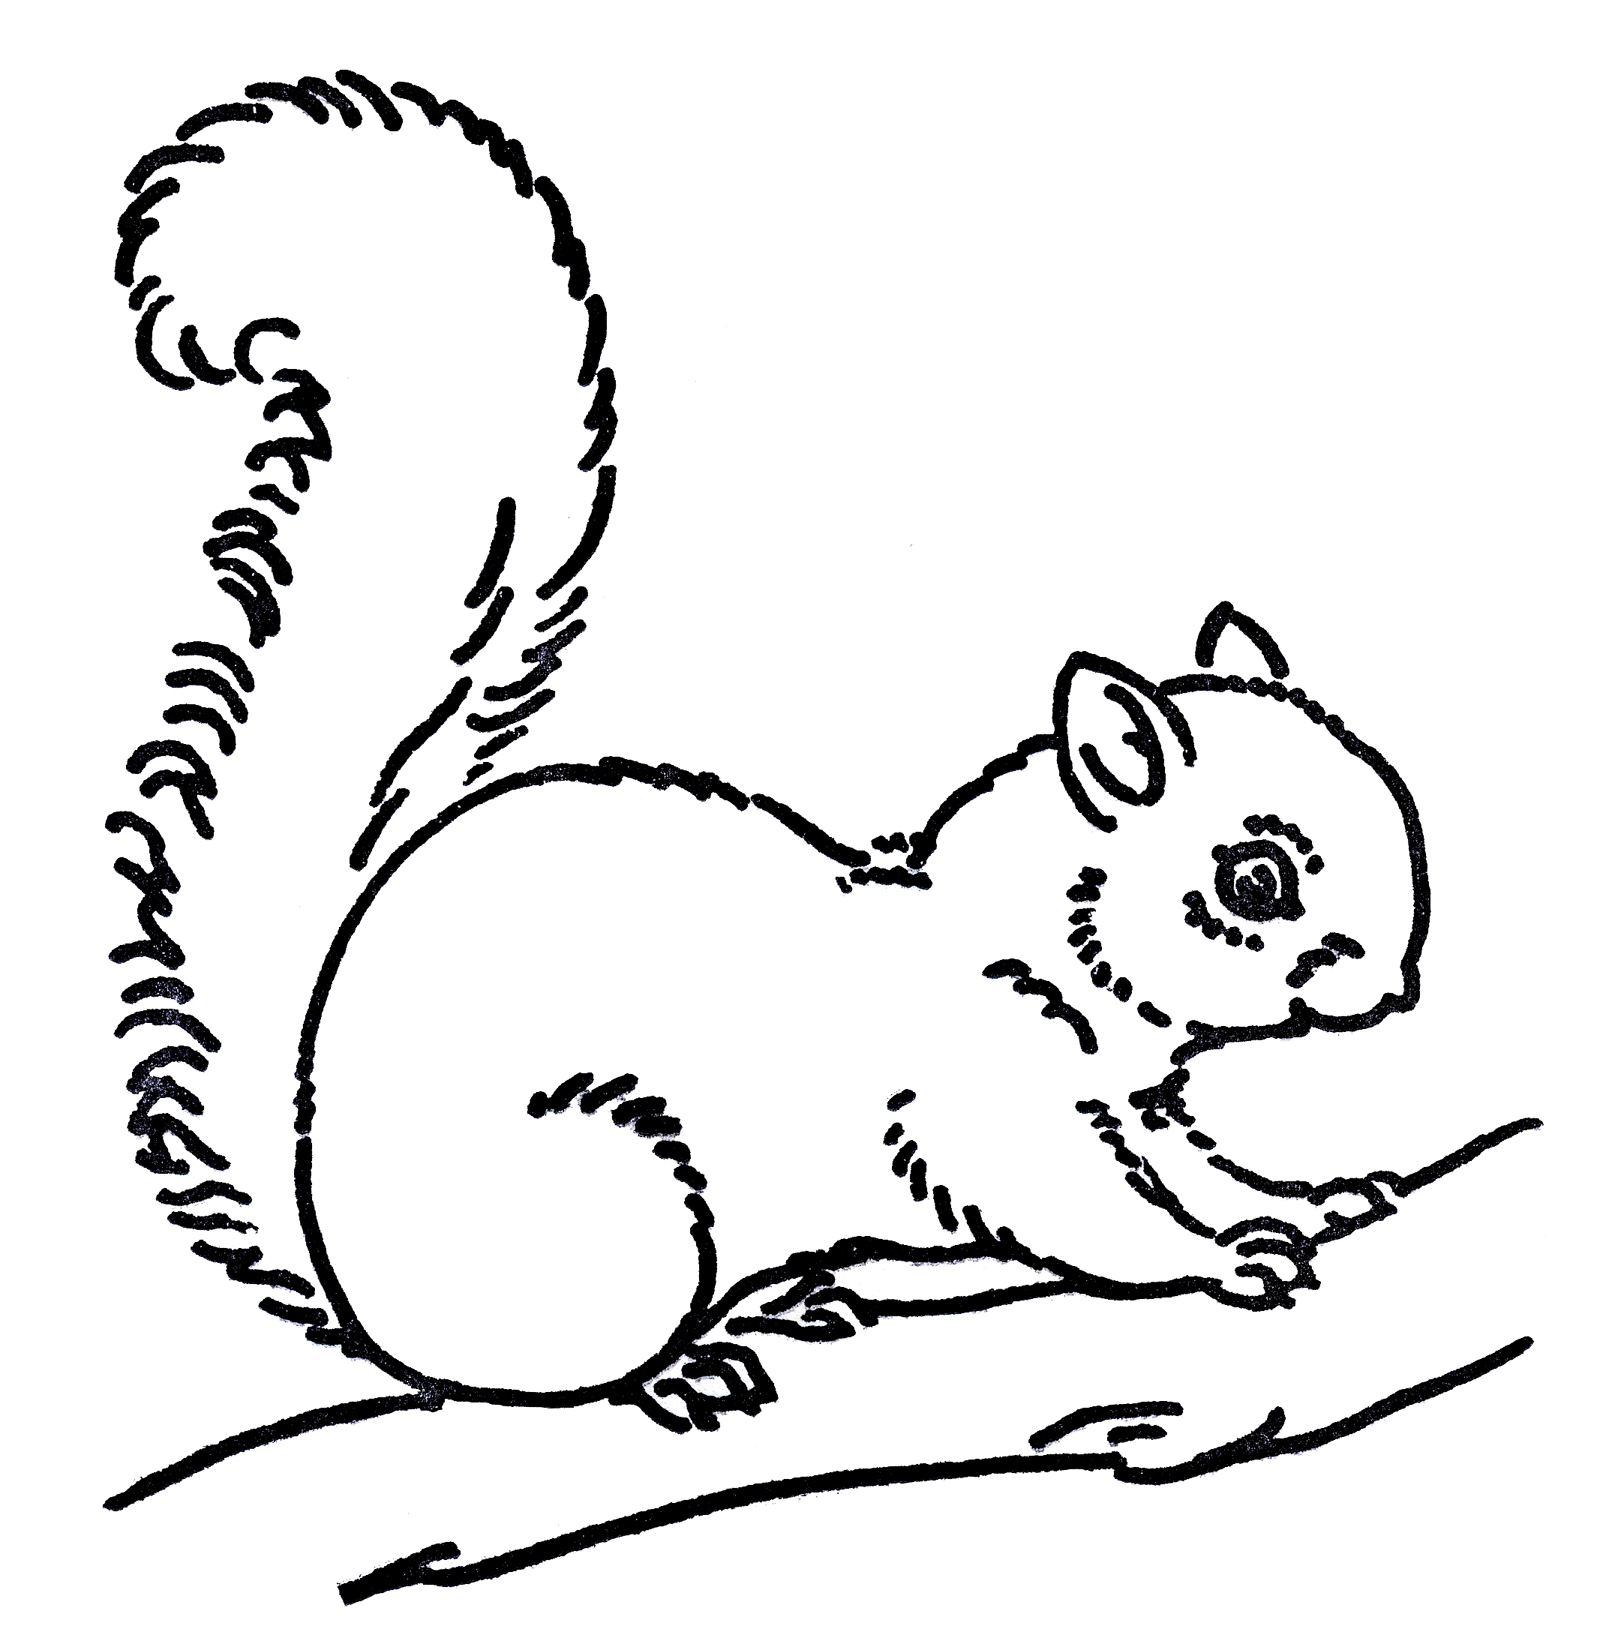 Free Line Art : Free line art images squirrel drawings the graphics fairy